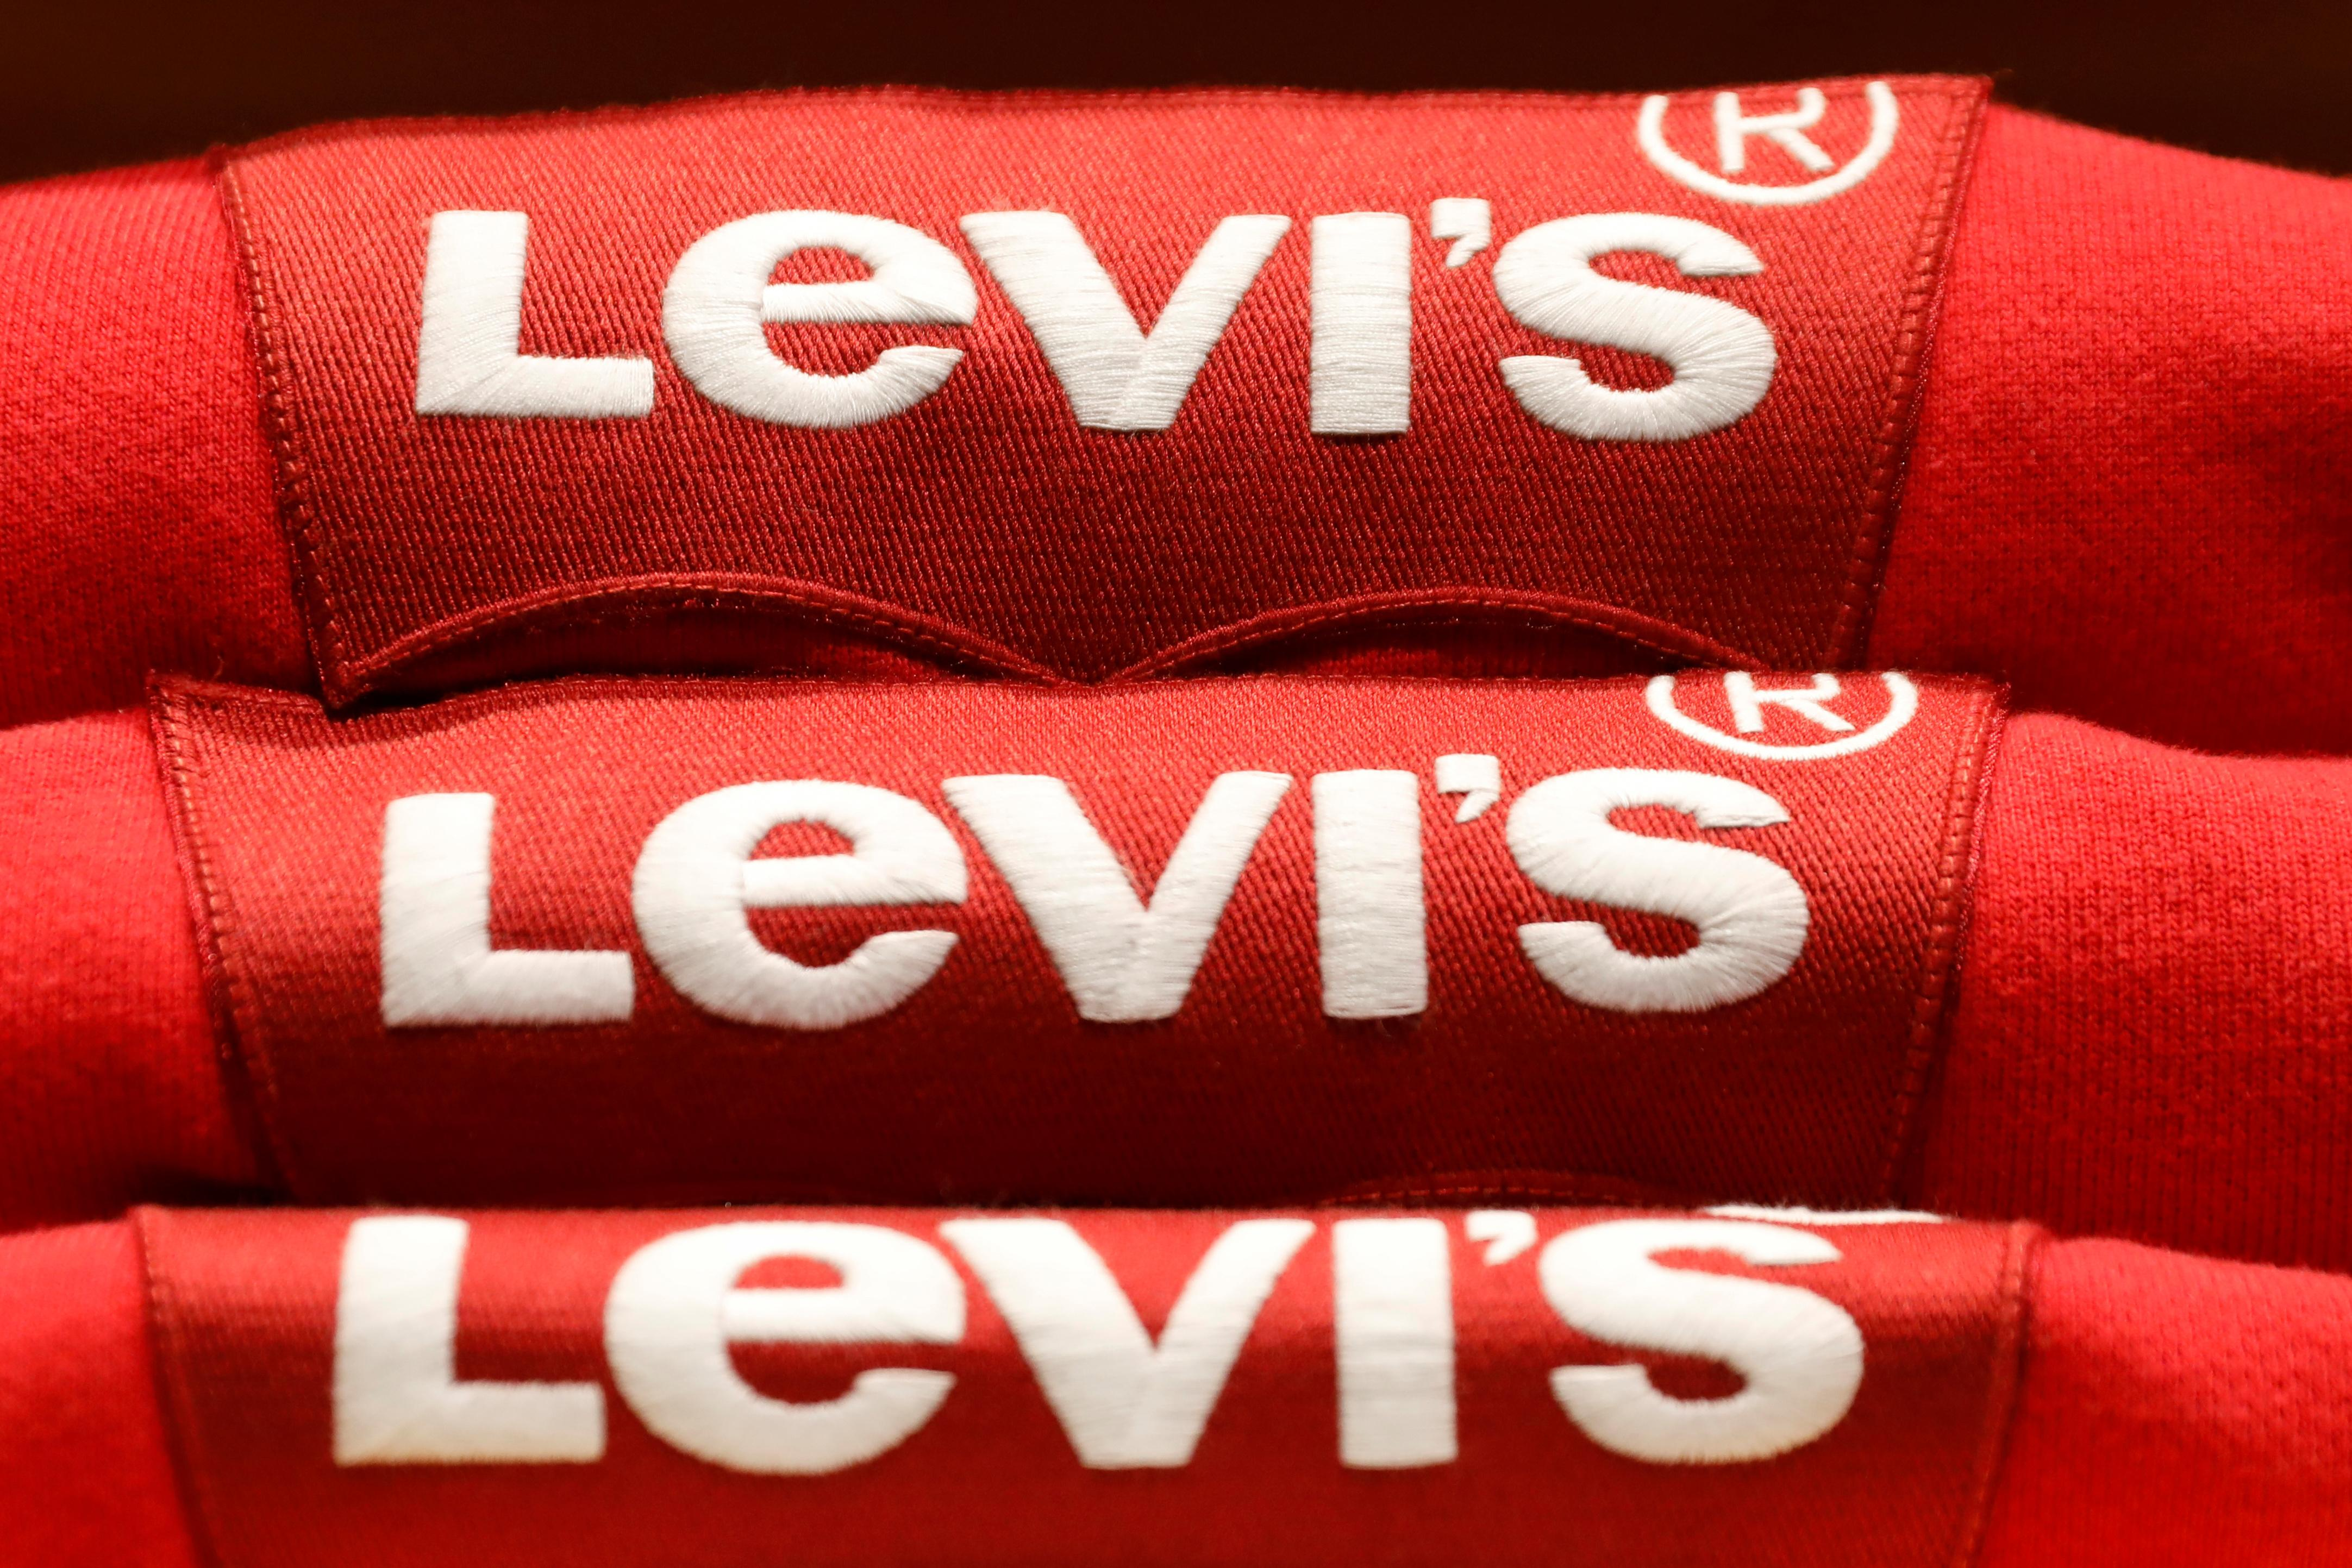 a055cafe71b Levi Strauss valued at  6.6 billion as IPO prices above target - Reuters